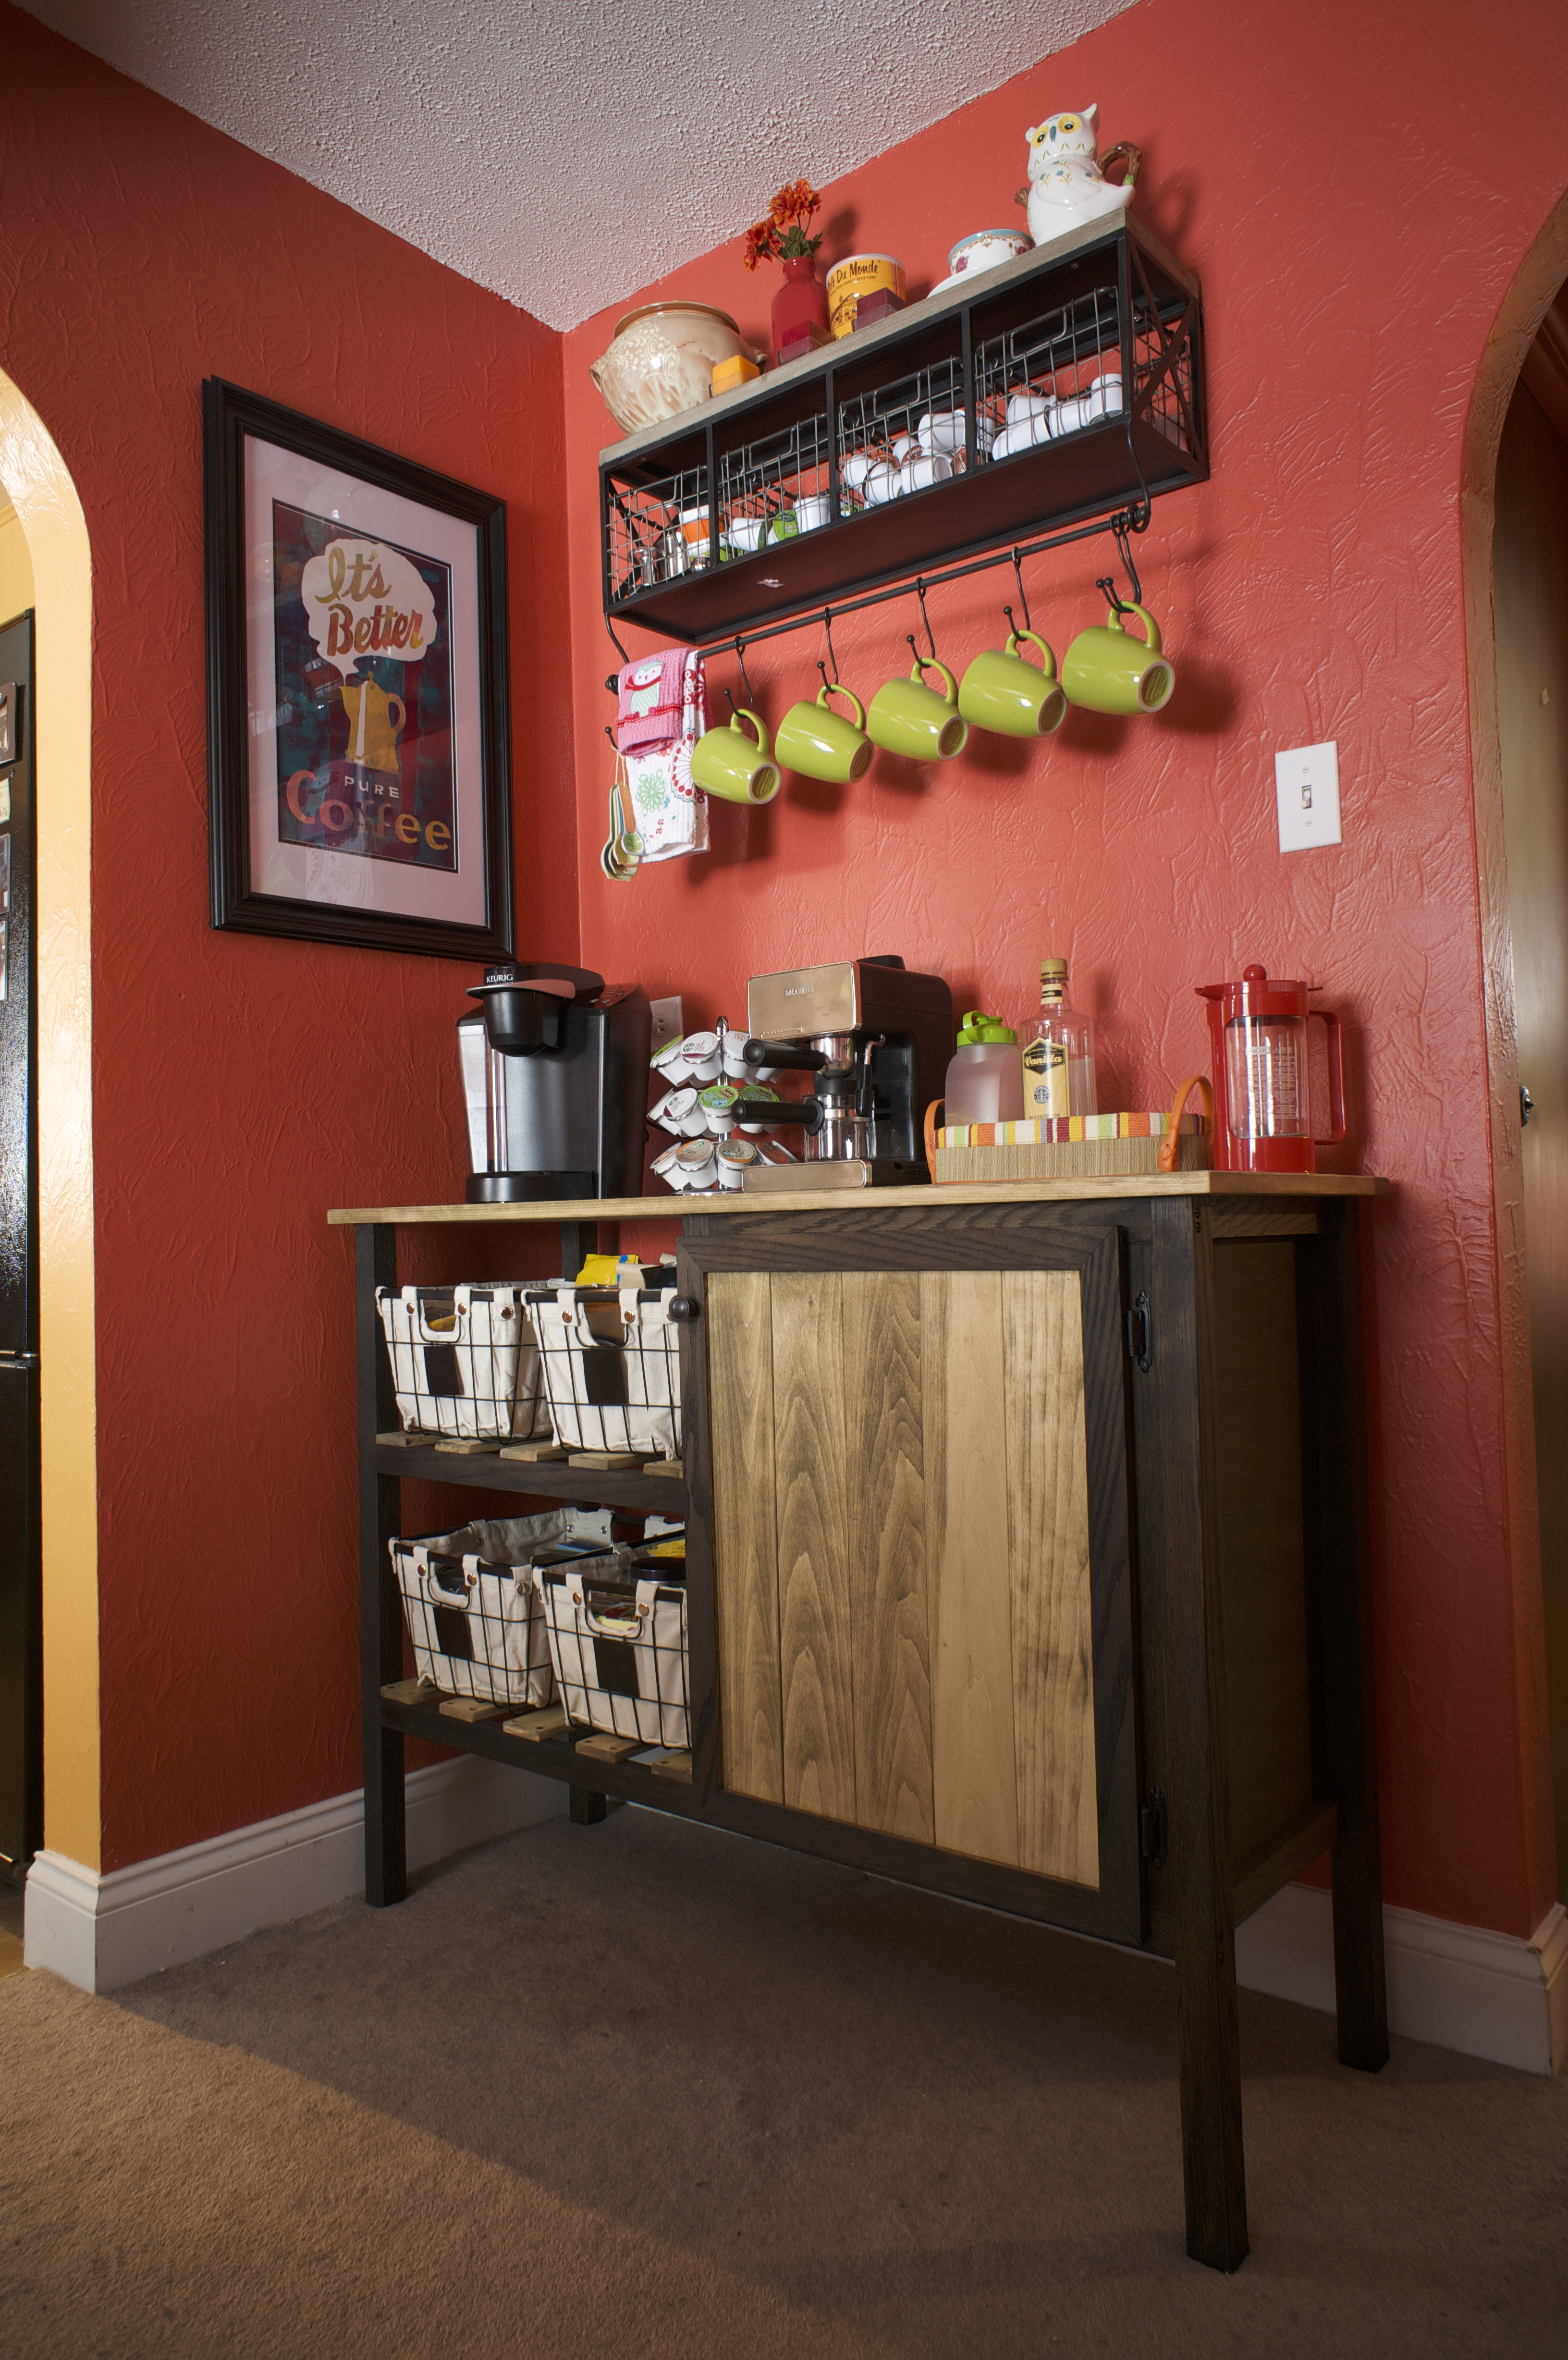 Best ideas about DIY Coffee Bars . Save or Pin DIY Coffee Bar Mr and Mrs Merrill Now.